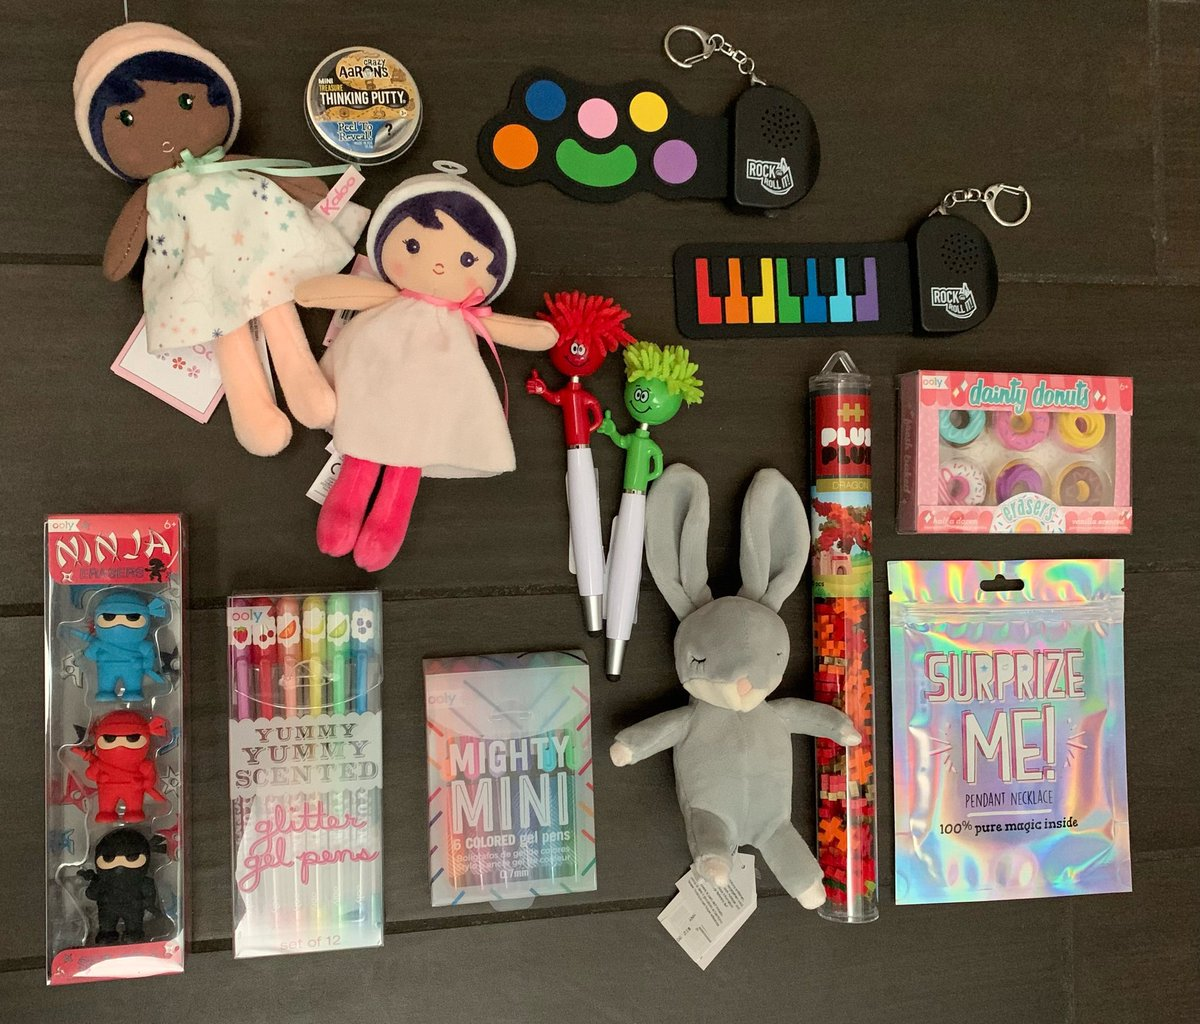 Stocking Stuffer Magic! Here are just a few of our favorite #stockingstuffers for the kiddos this holiday season!  Stop by the store & check out our Holiday Market! #shoplocal #shopsmall #shopearly